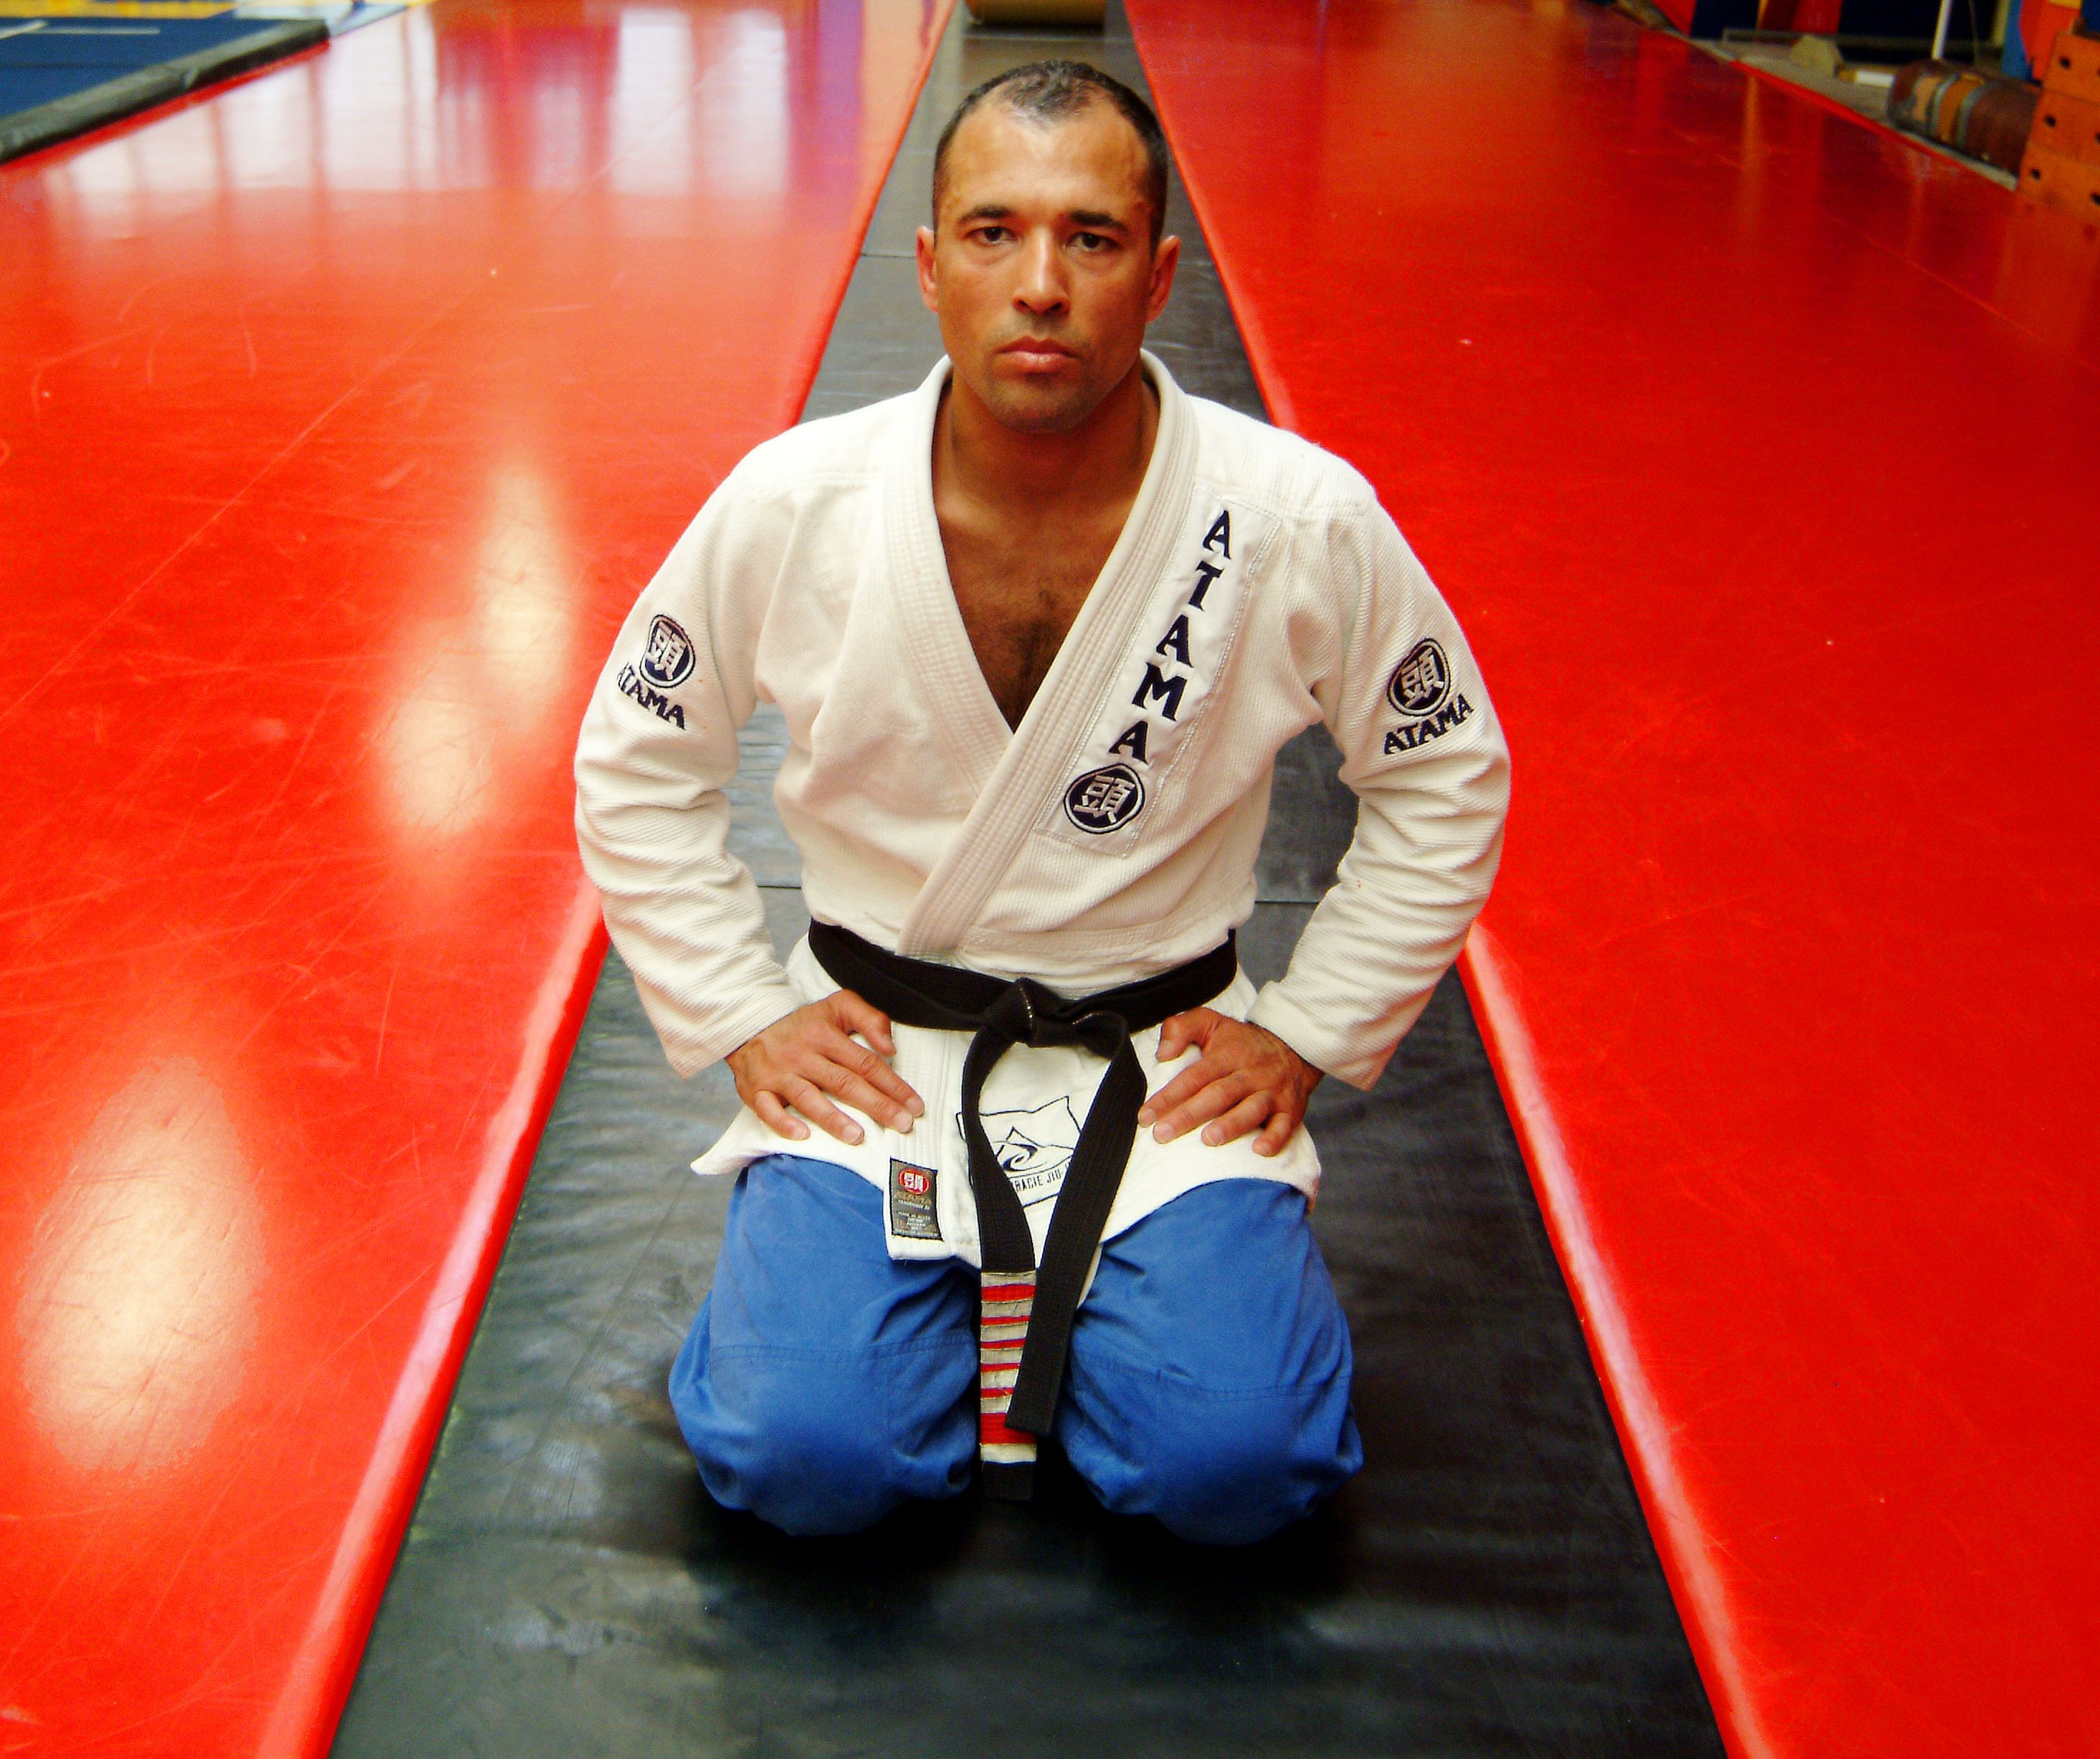 Royce Gracie, Wellington NZ, 2004 | Martial Arts | Jiu jitsu